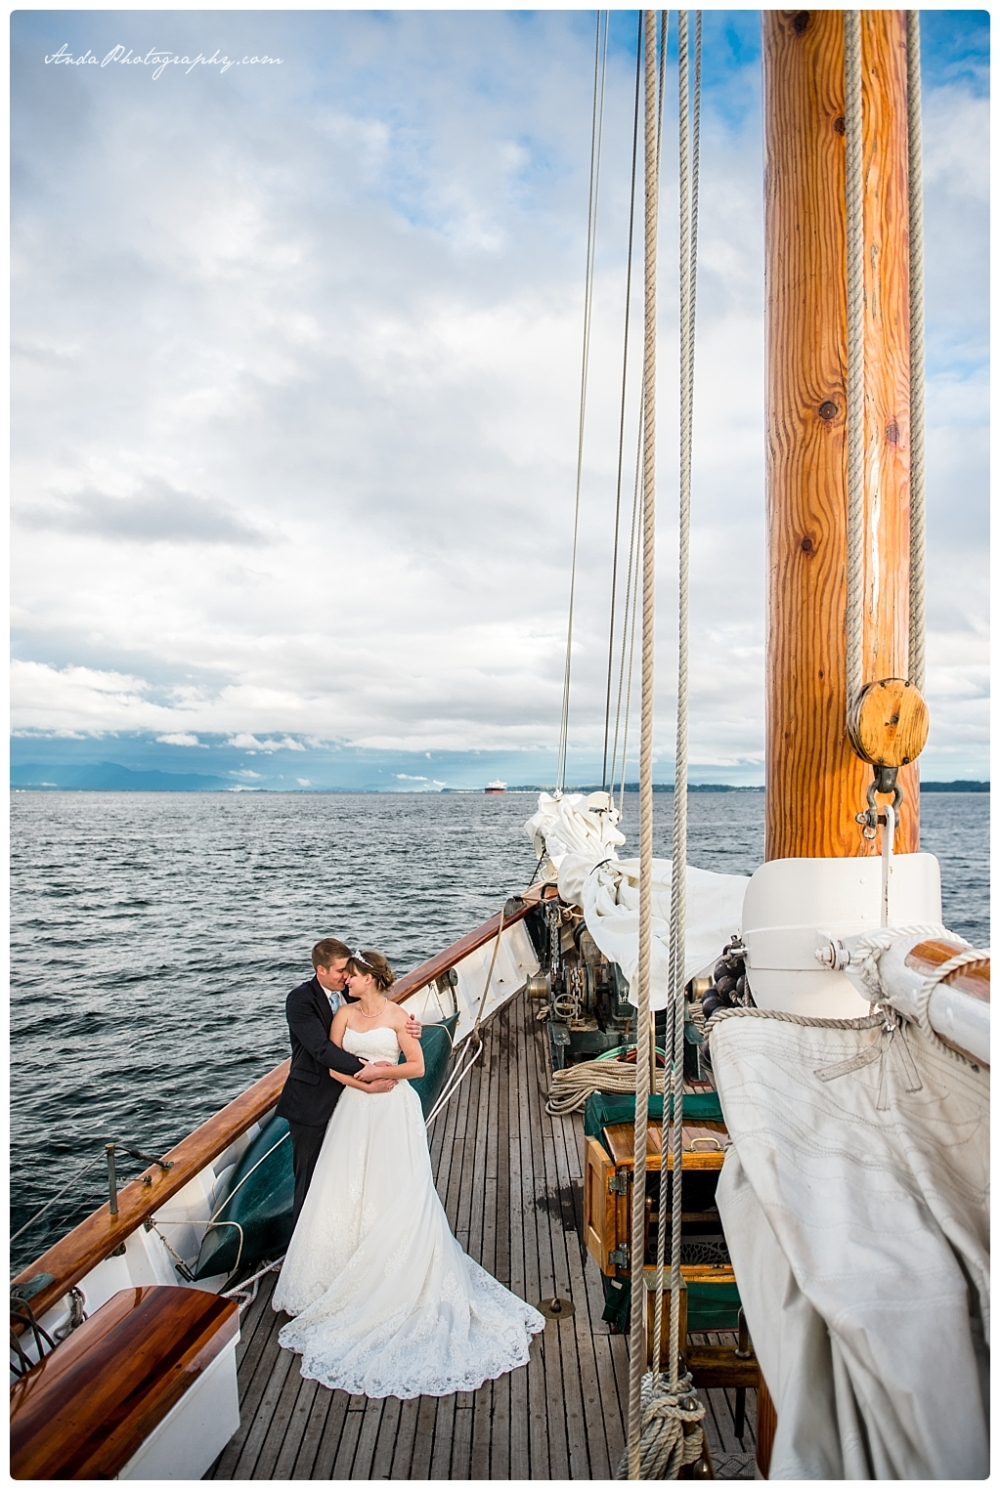 Anda Photography Bellingham wedding photographer seattle wedding photographer Schooner Zodiak Wedding photos_0023